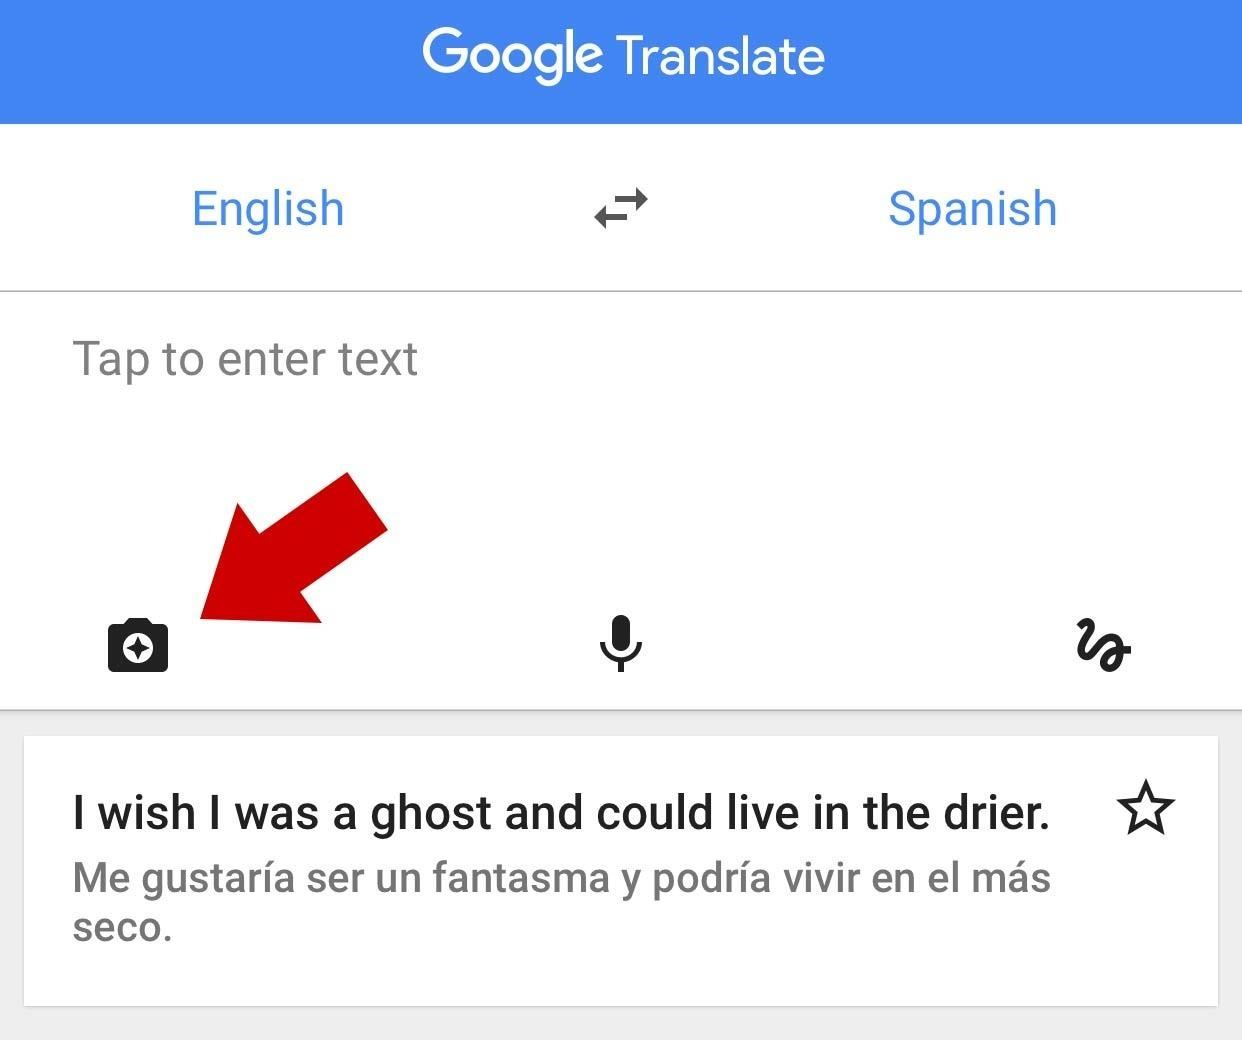 How to Use Your Smartphone's Camera to Instantly Translate Anything